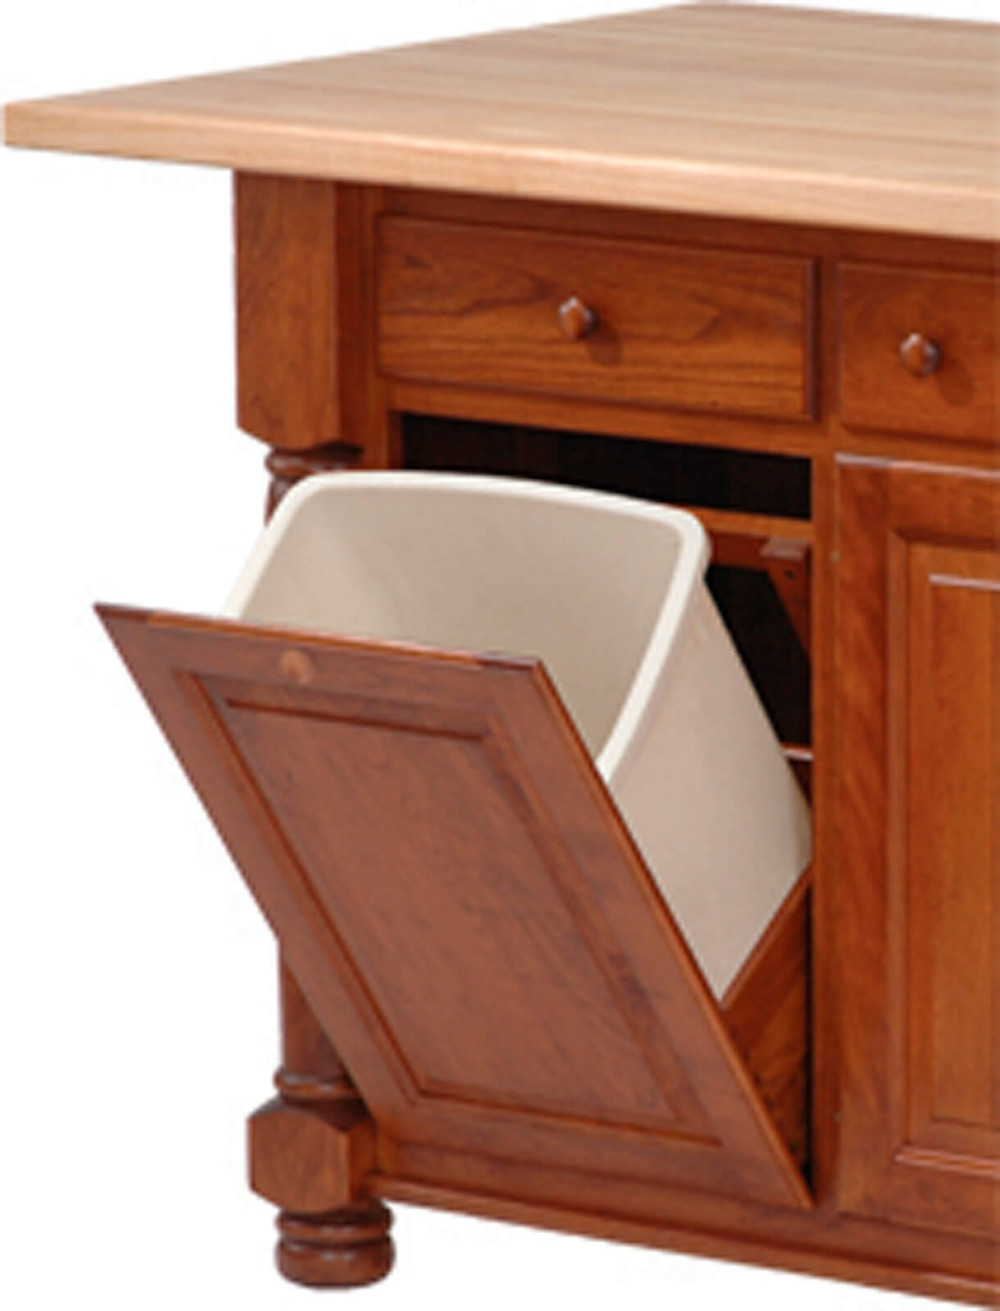 Add wastebasket slide-out or tilt-out to your kitchen island